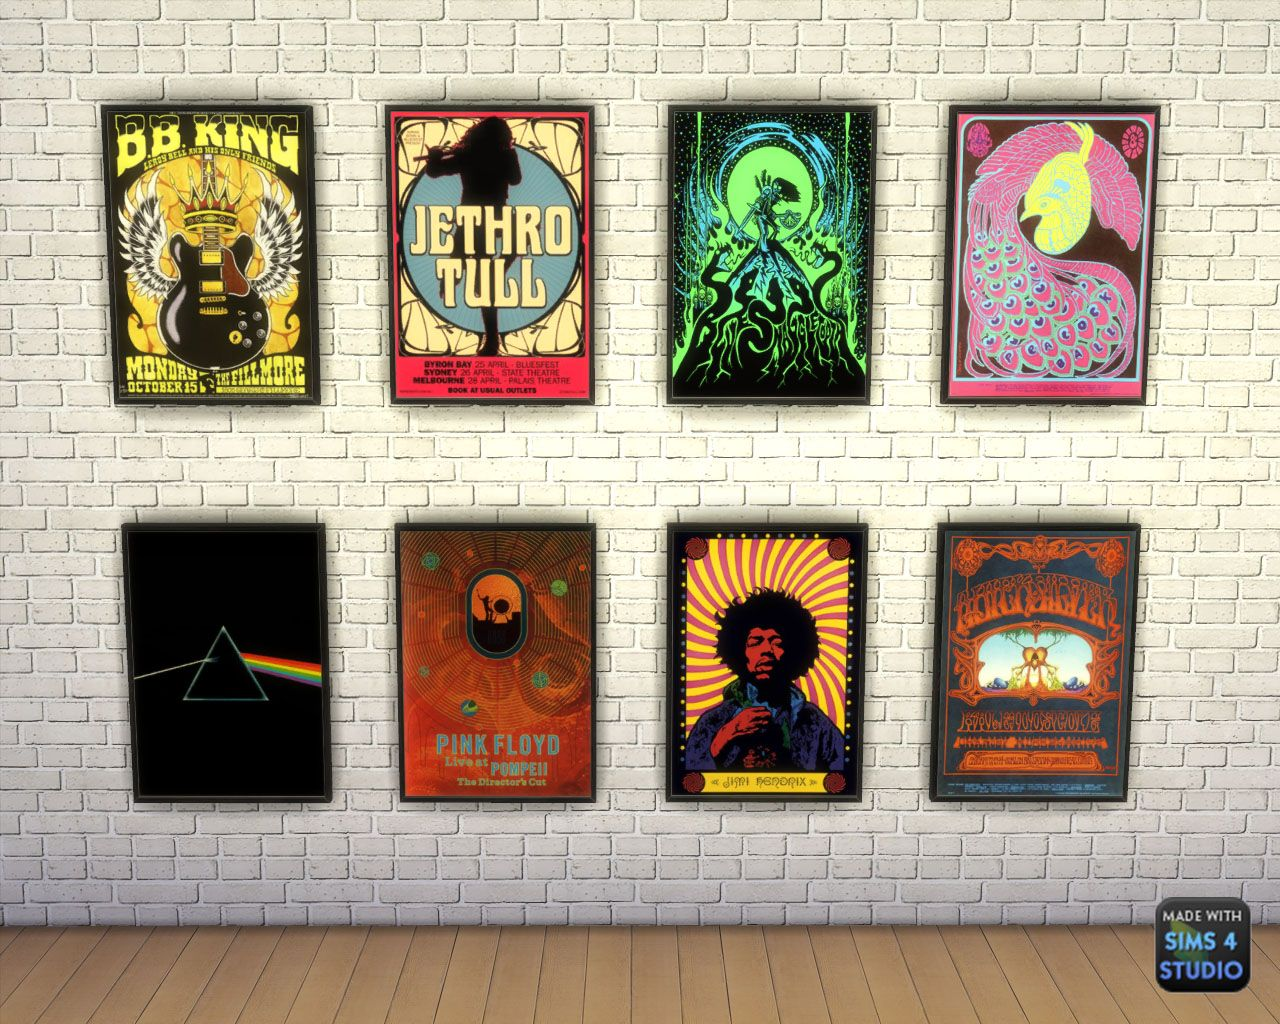 Sims 4 - Rock Posters 25 swatches Mesh by BLACK #s4rocker #wallart